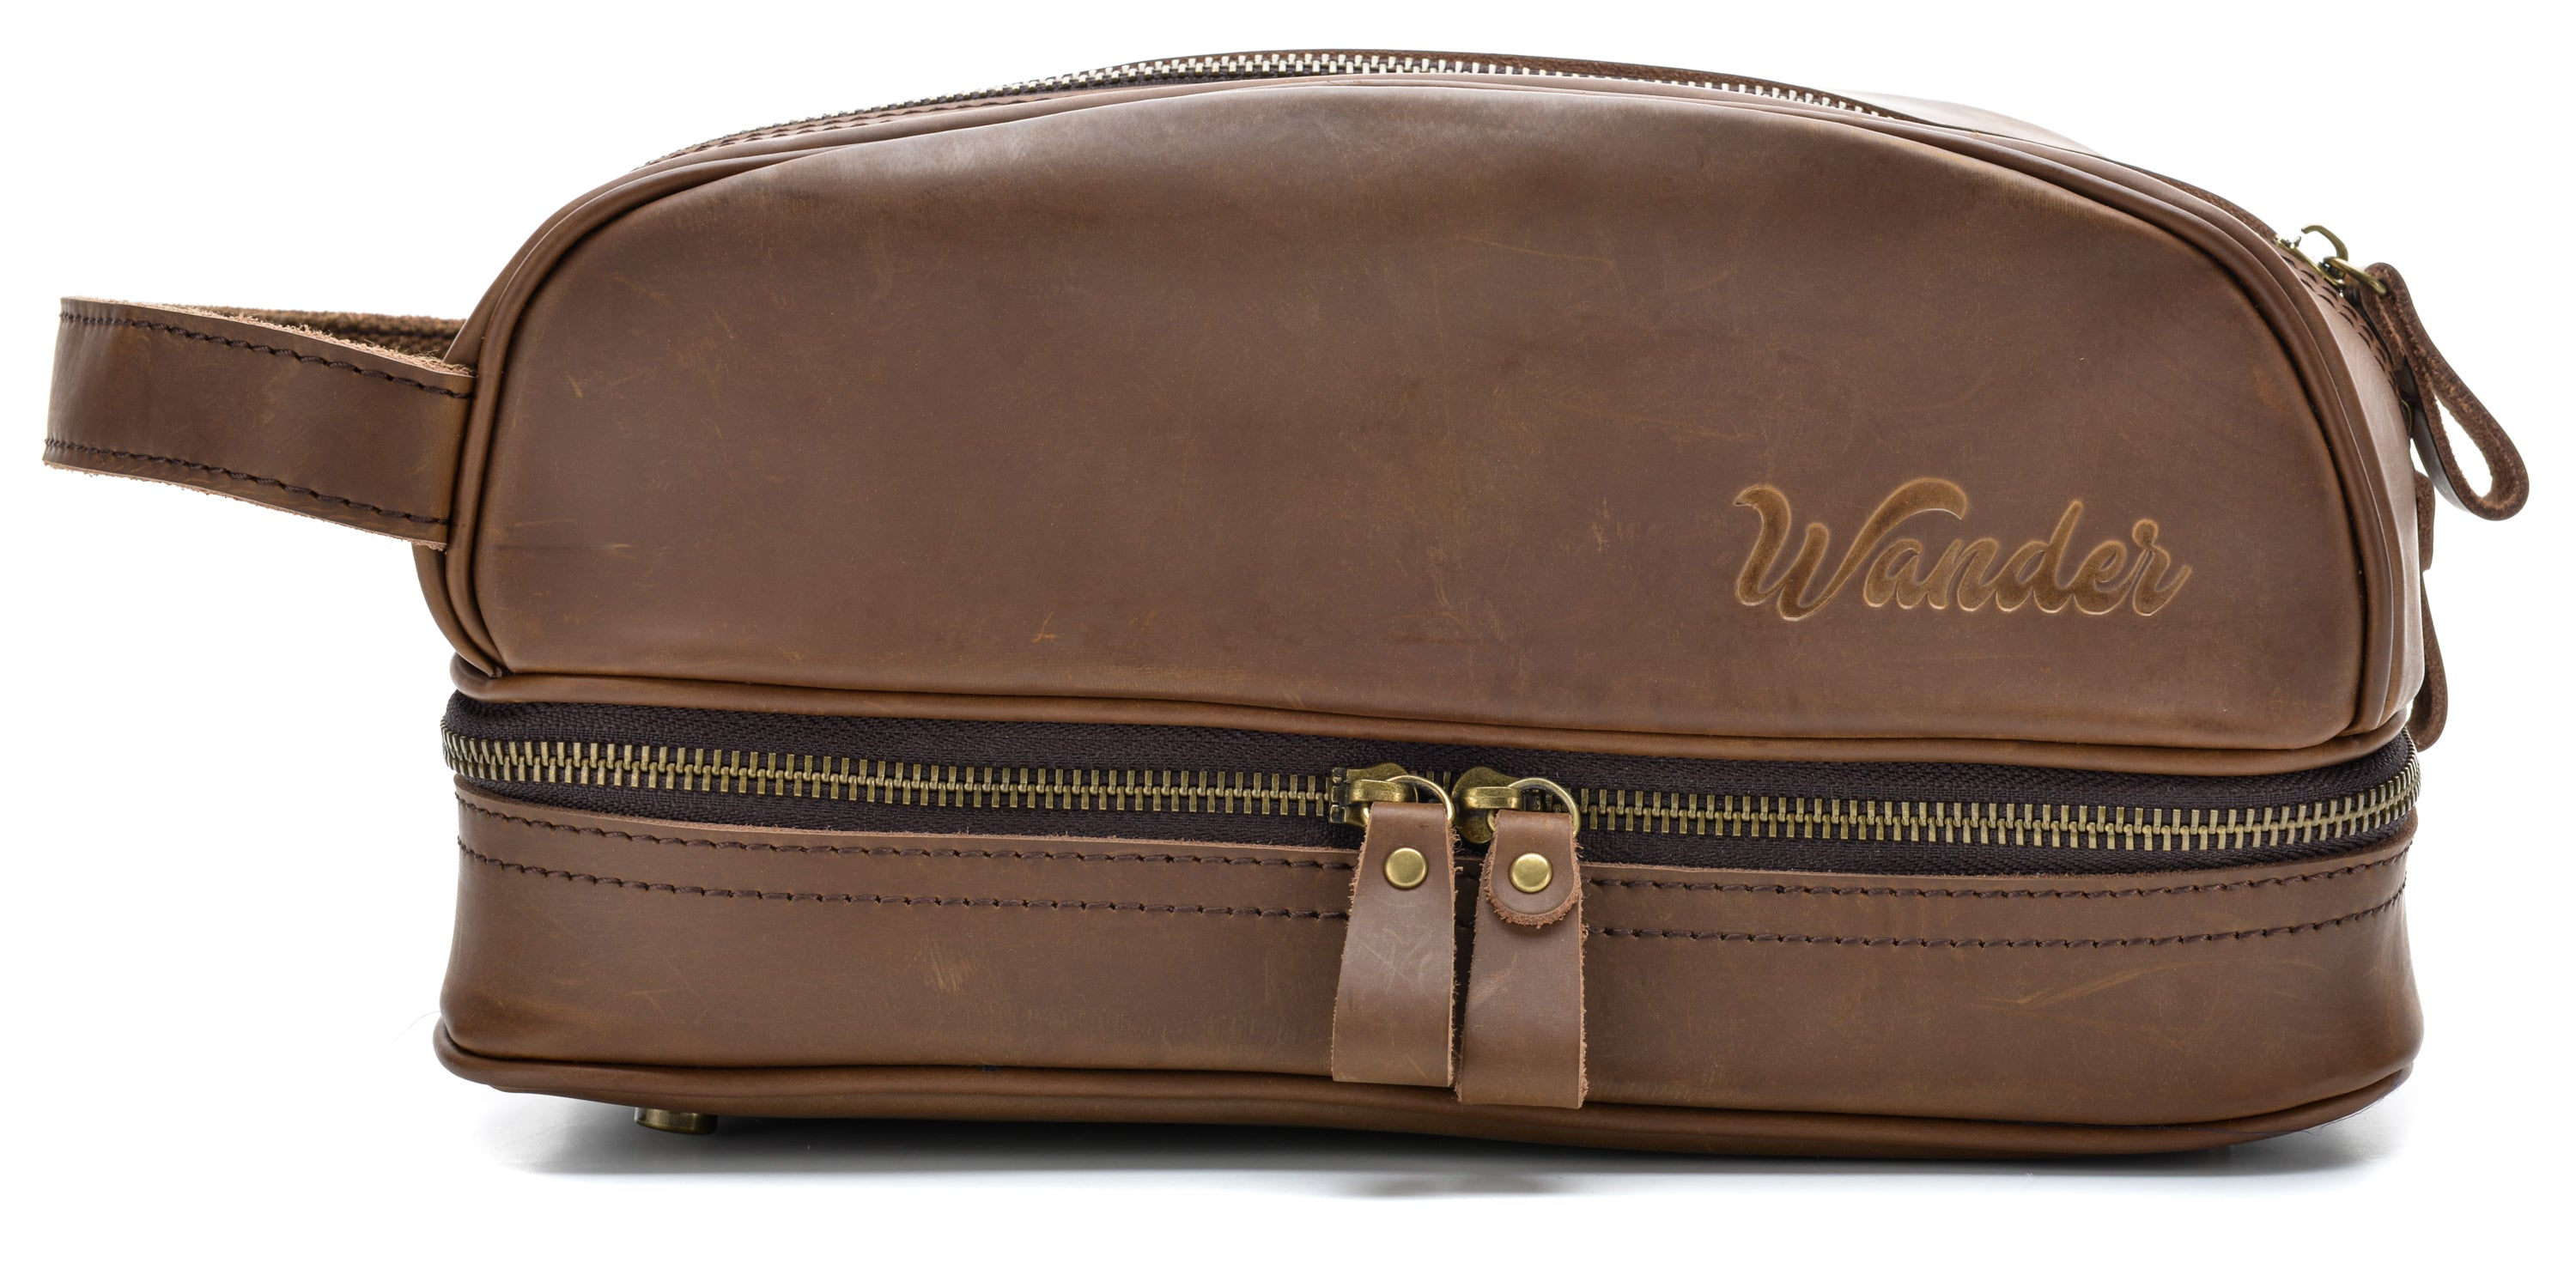 046621343c42 Brown Toiletry Bag colorway - Wander Travel and Supply